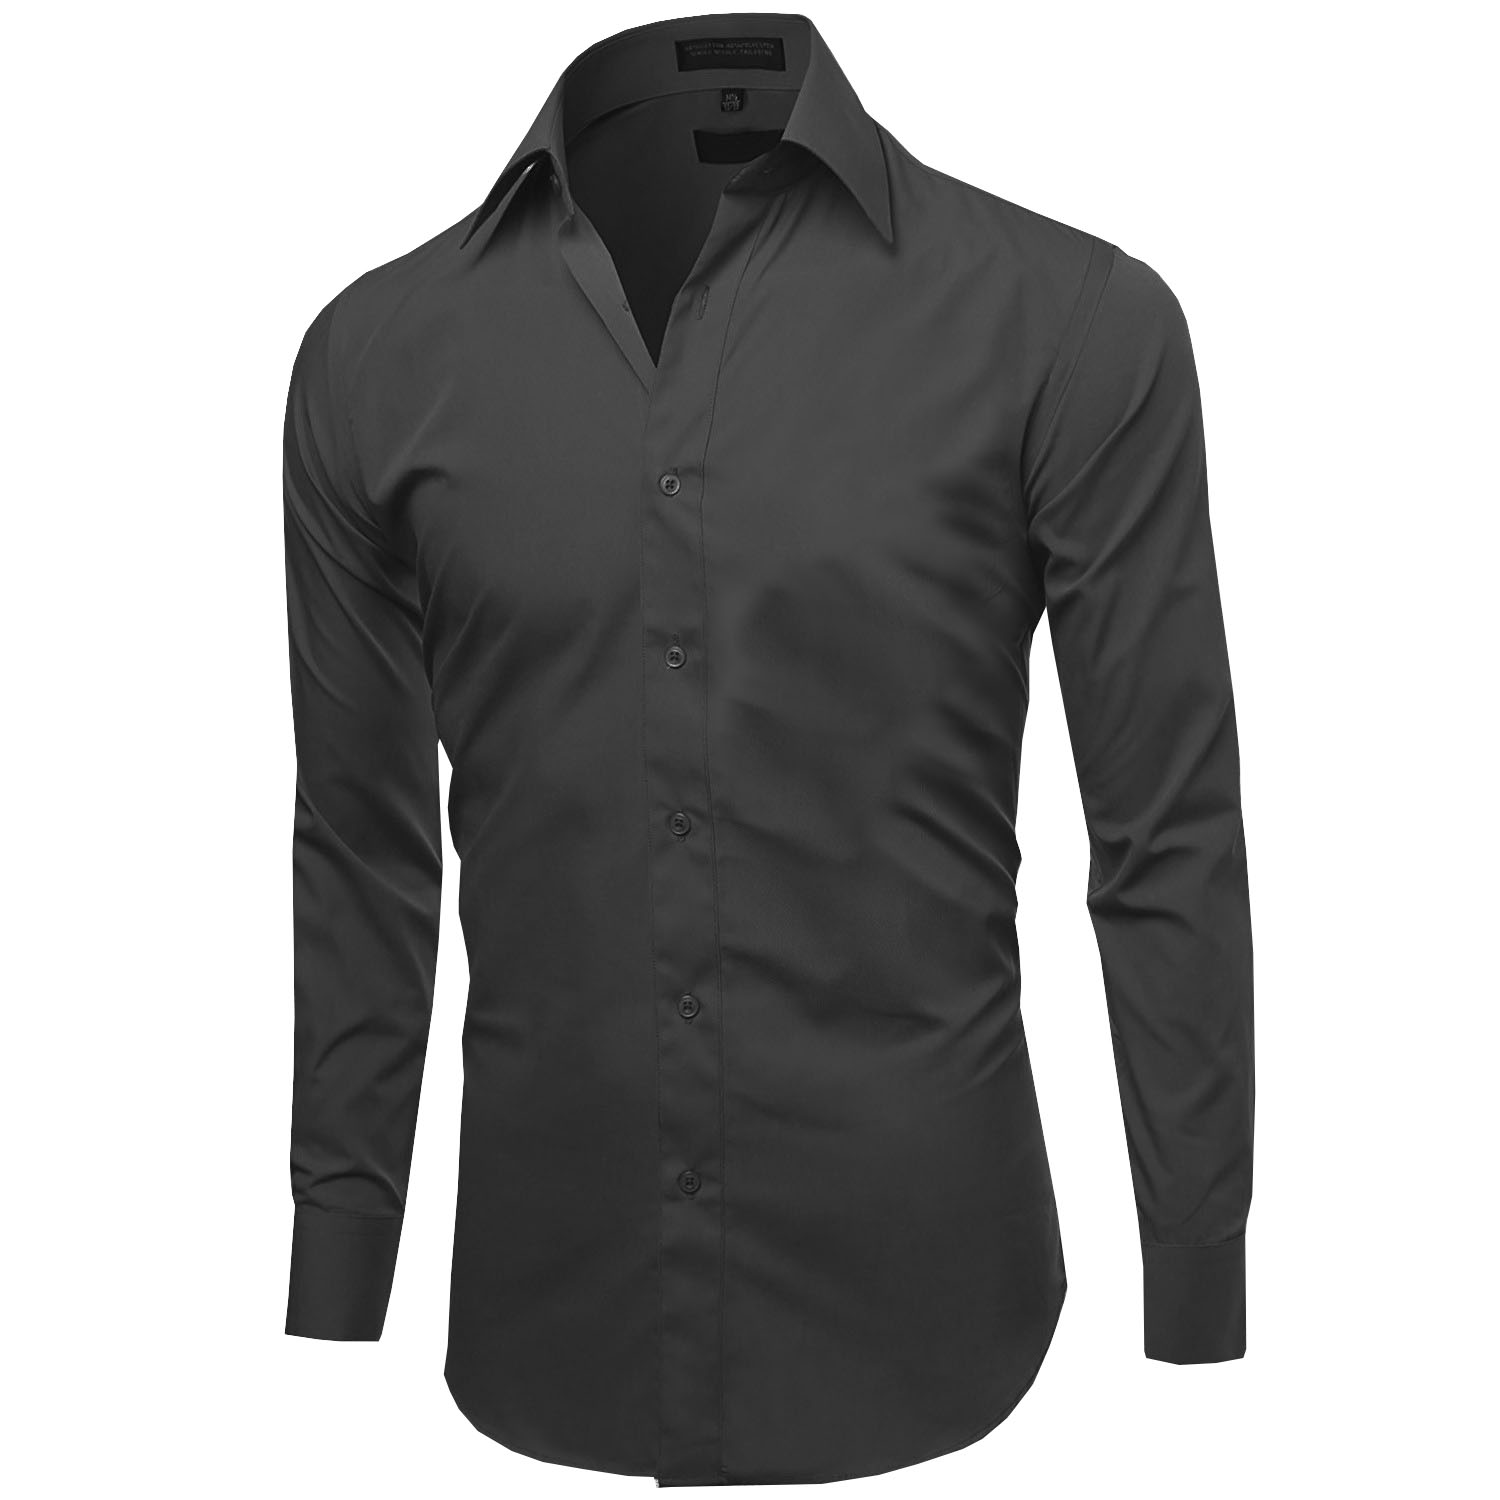 Omega-Italy-Men-039-s-Premium-Slim-Fit-Button-Up-Long-Sleeve-Solid-Color-Dress-Shirt thumbnail 13